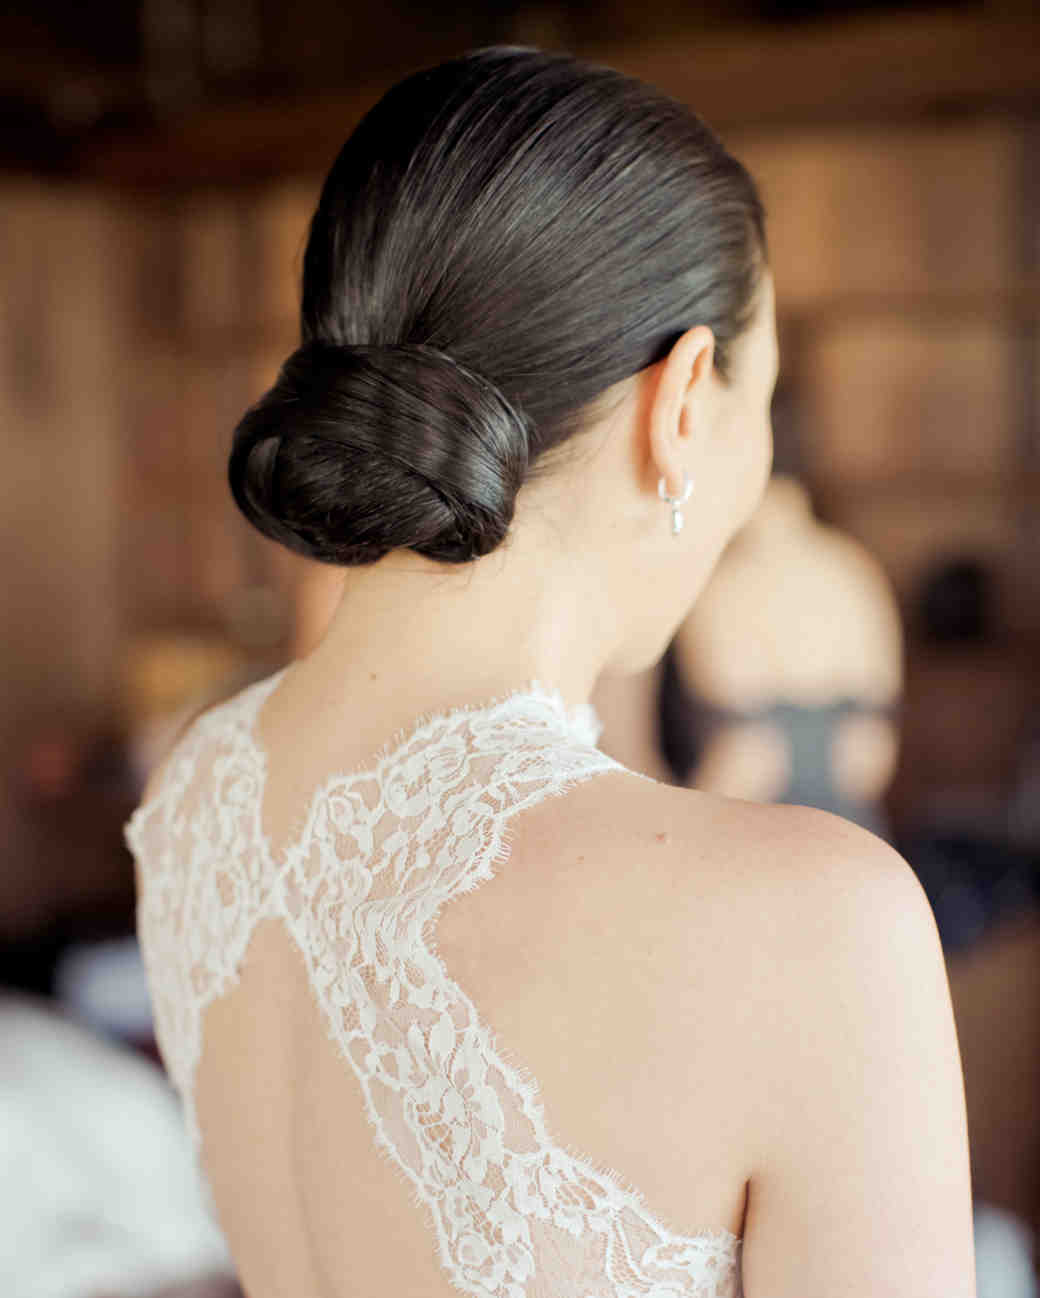 Wedding Hairstyle: Modern Wedding Hairstyles For The Cool, Contemporary Bride